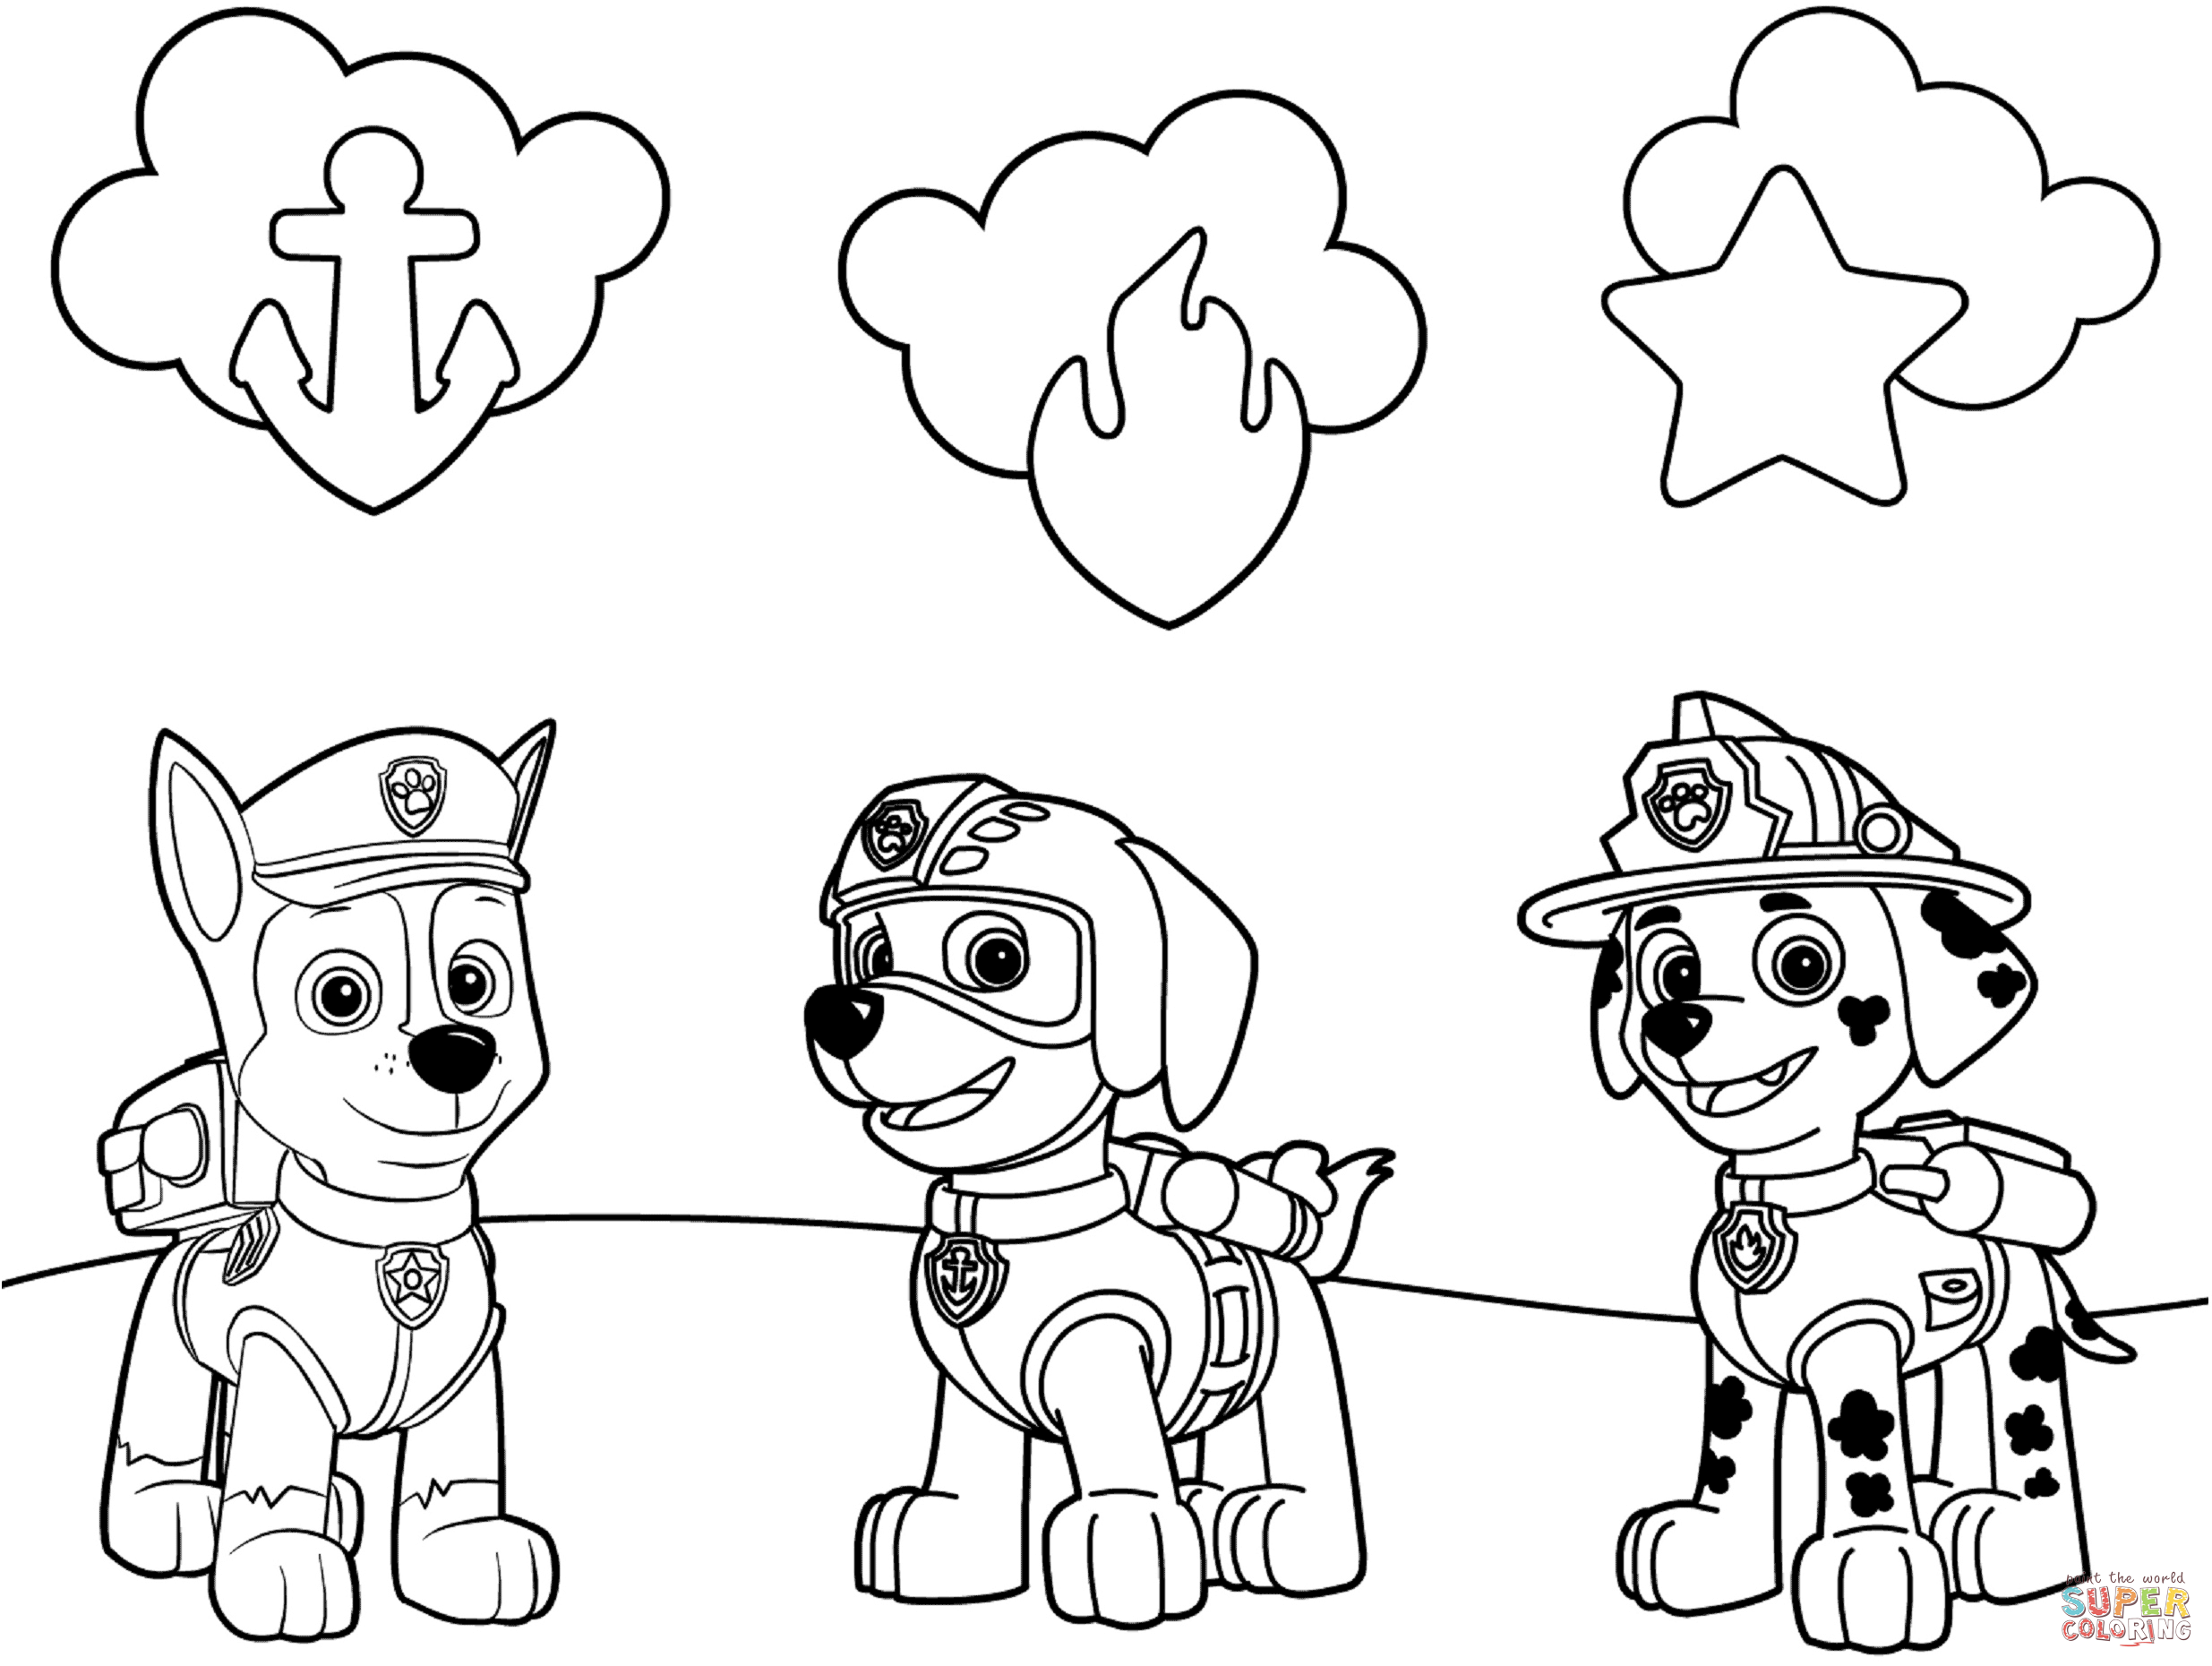 image relating to Paw Patrol Badges Printable identified as Paw Patrol Badges Coloring Site Absolutely free Printable Coloring